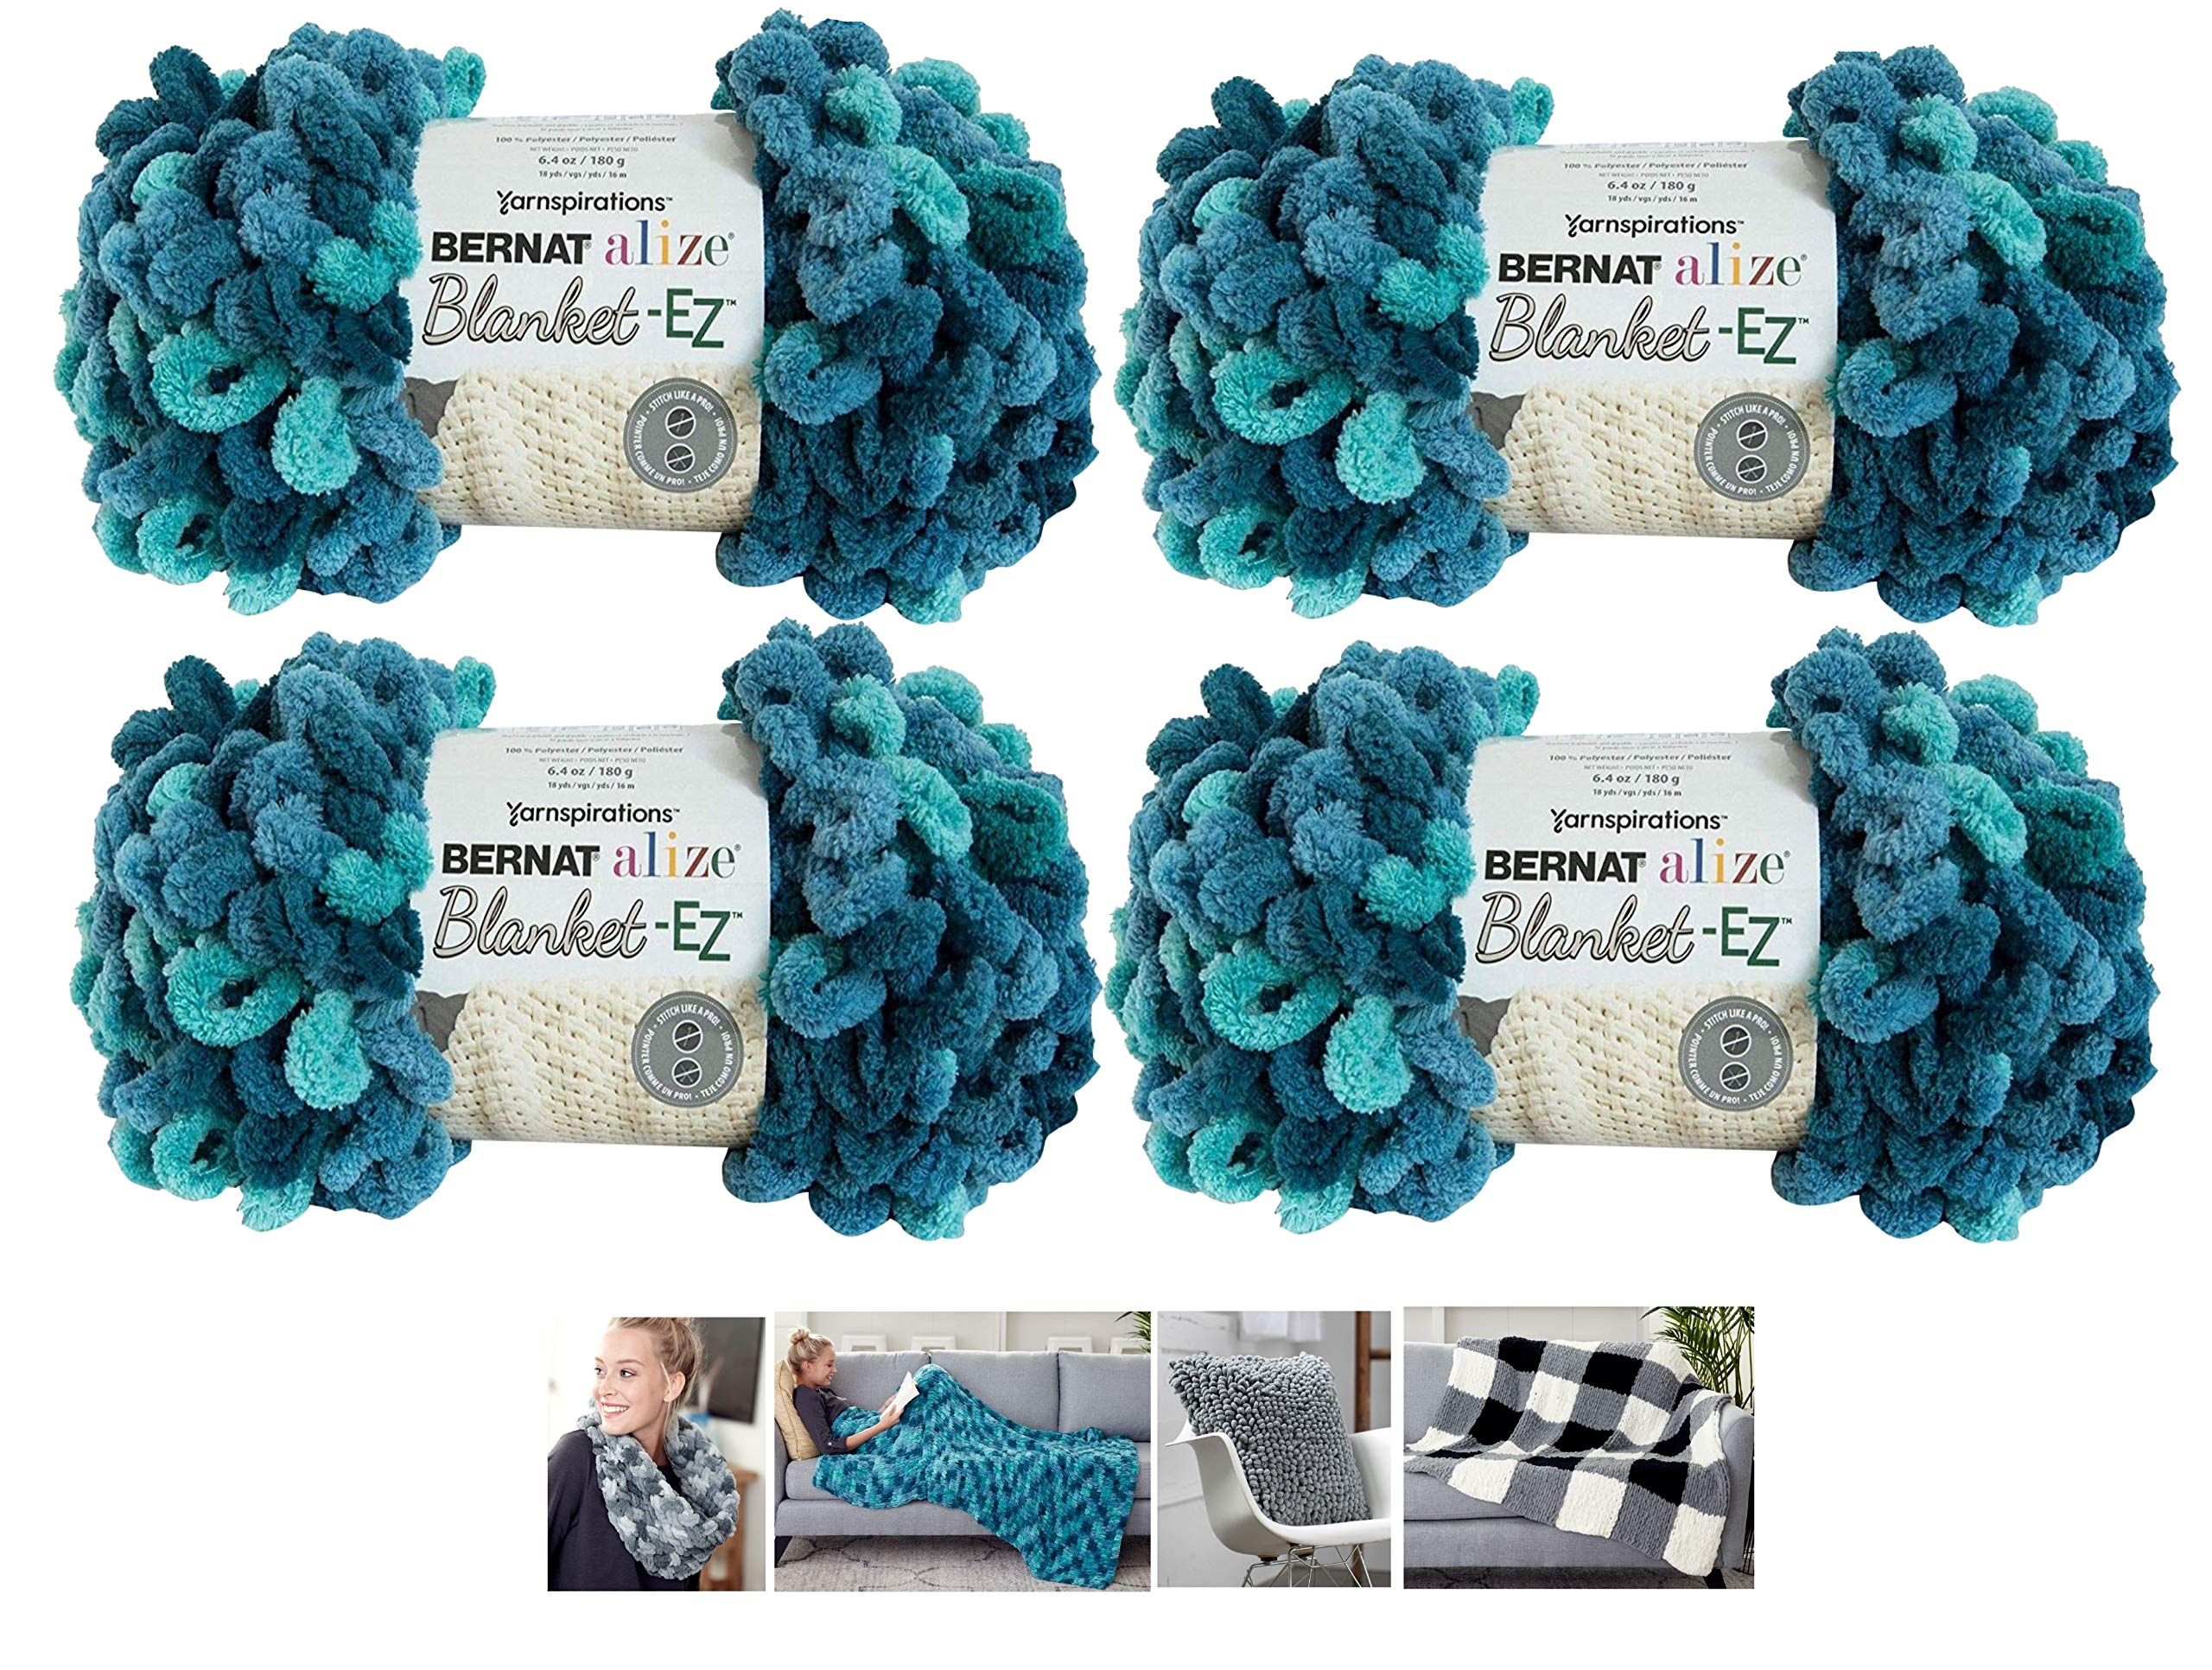 Bernat Alize EZ Blanket Yarn Bundle 100% Polyester 4 -Pack Seaport Teals Plus 4 Patterns